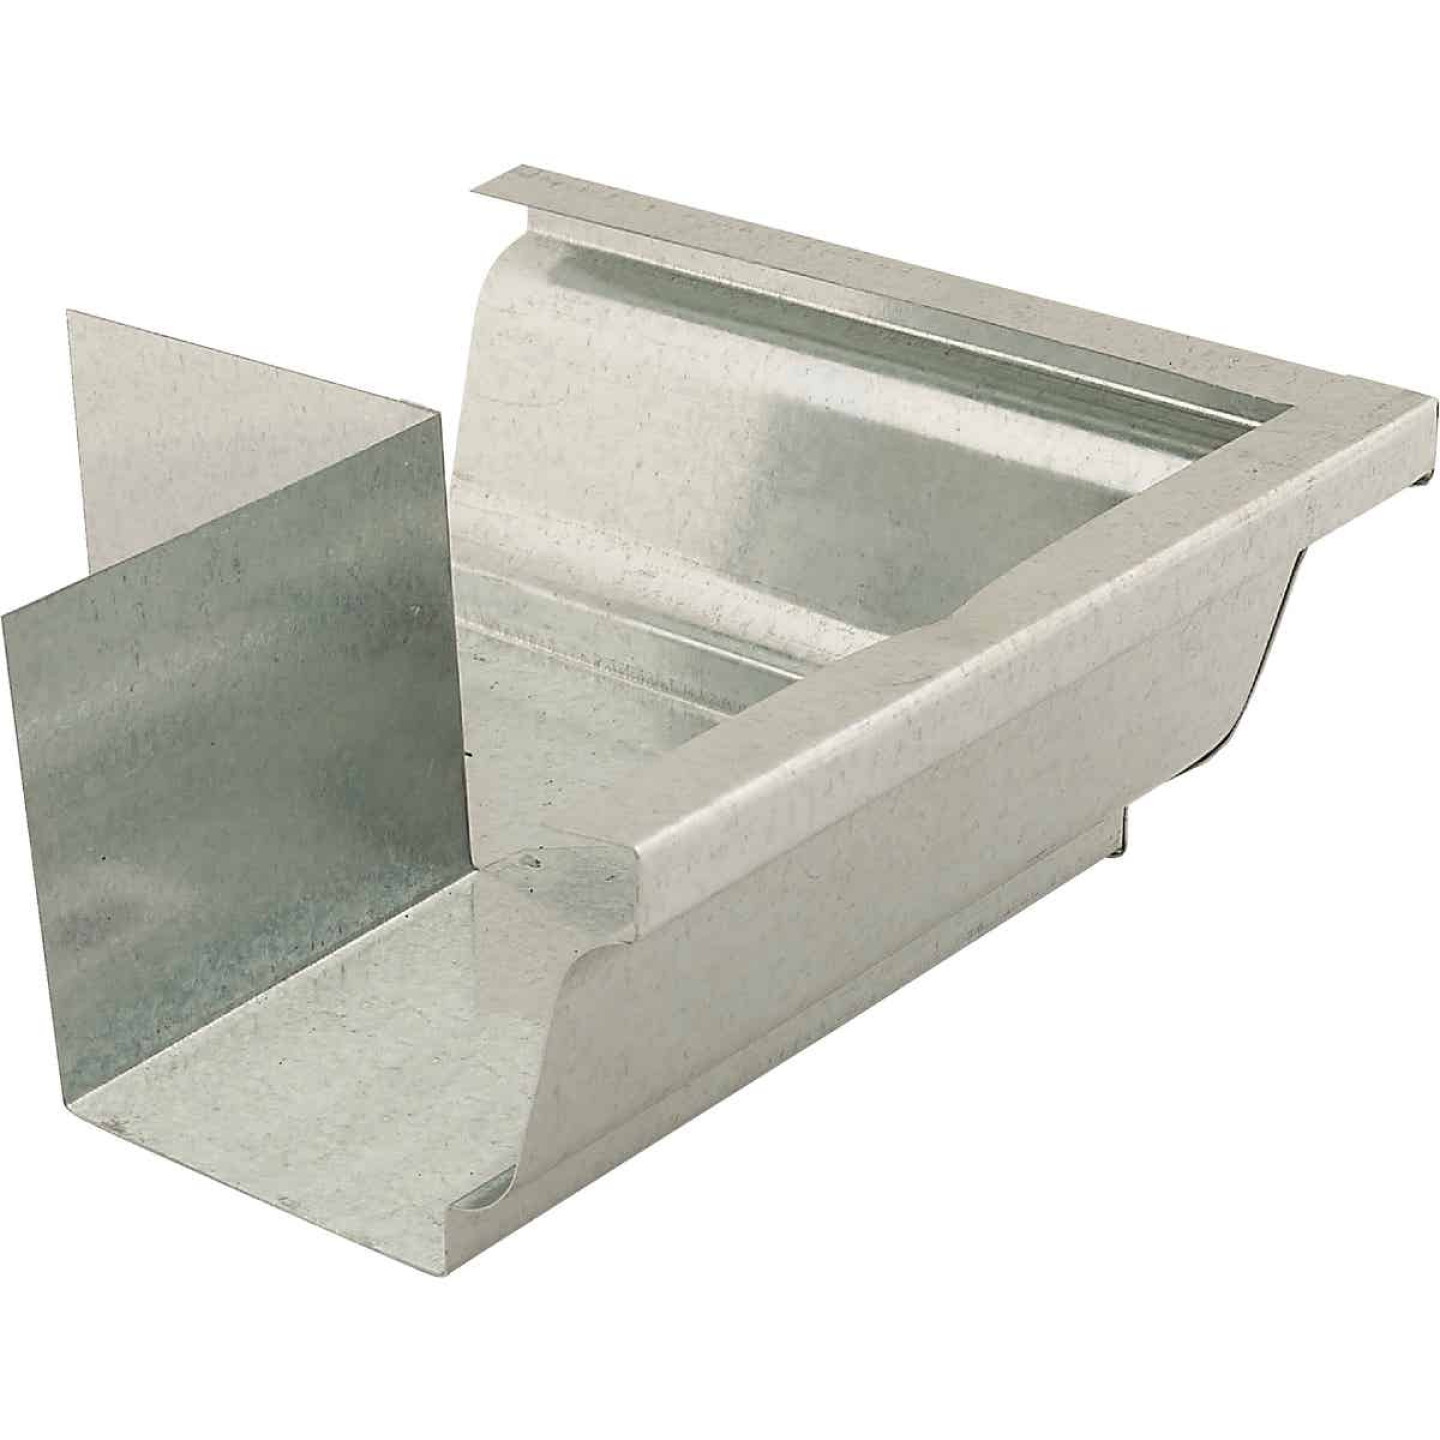 NorWesco 4 In. Galvanized Gutter Outside Corner Image 1